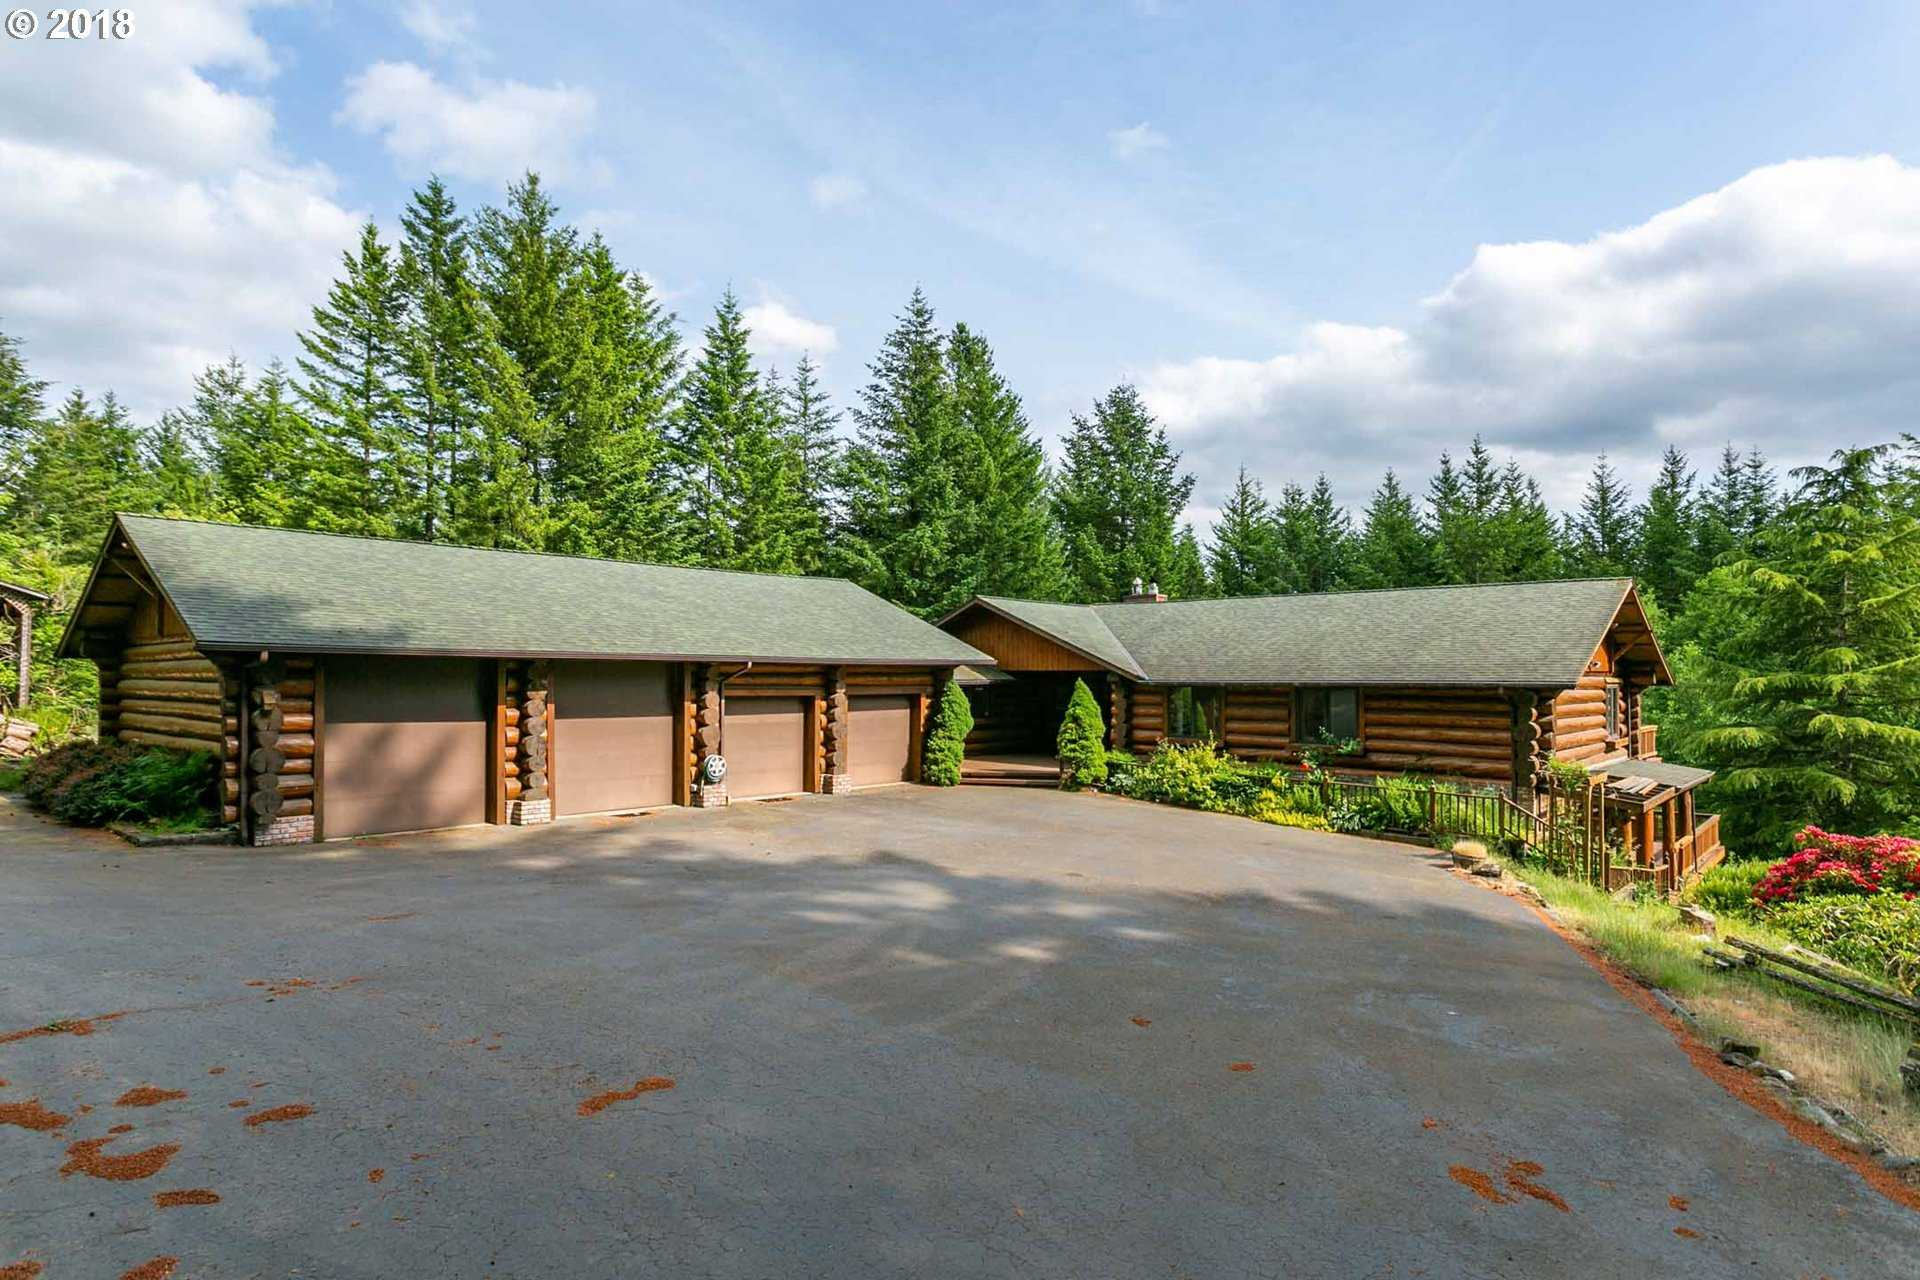 $849,900 - 4Br/4Ba -  for Sale in Ca,as, Camas